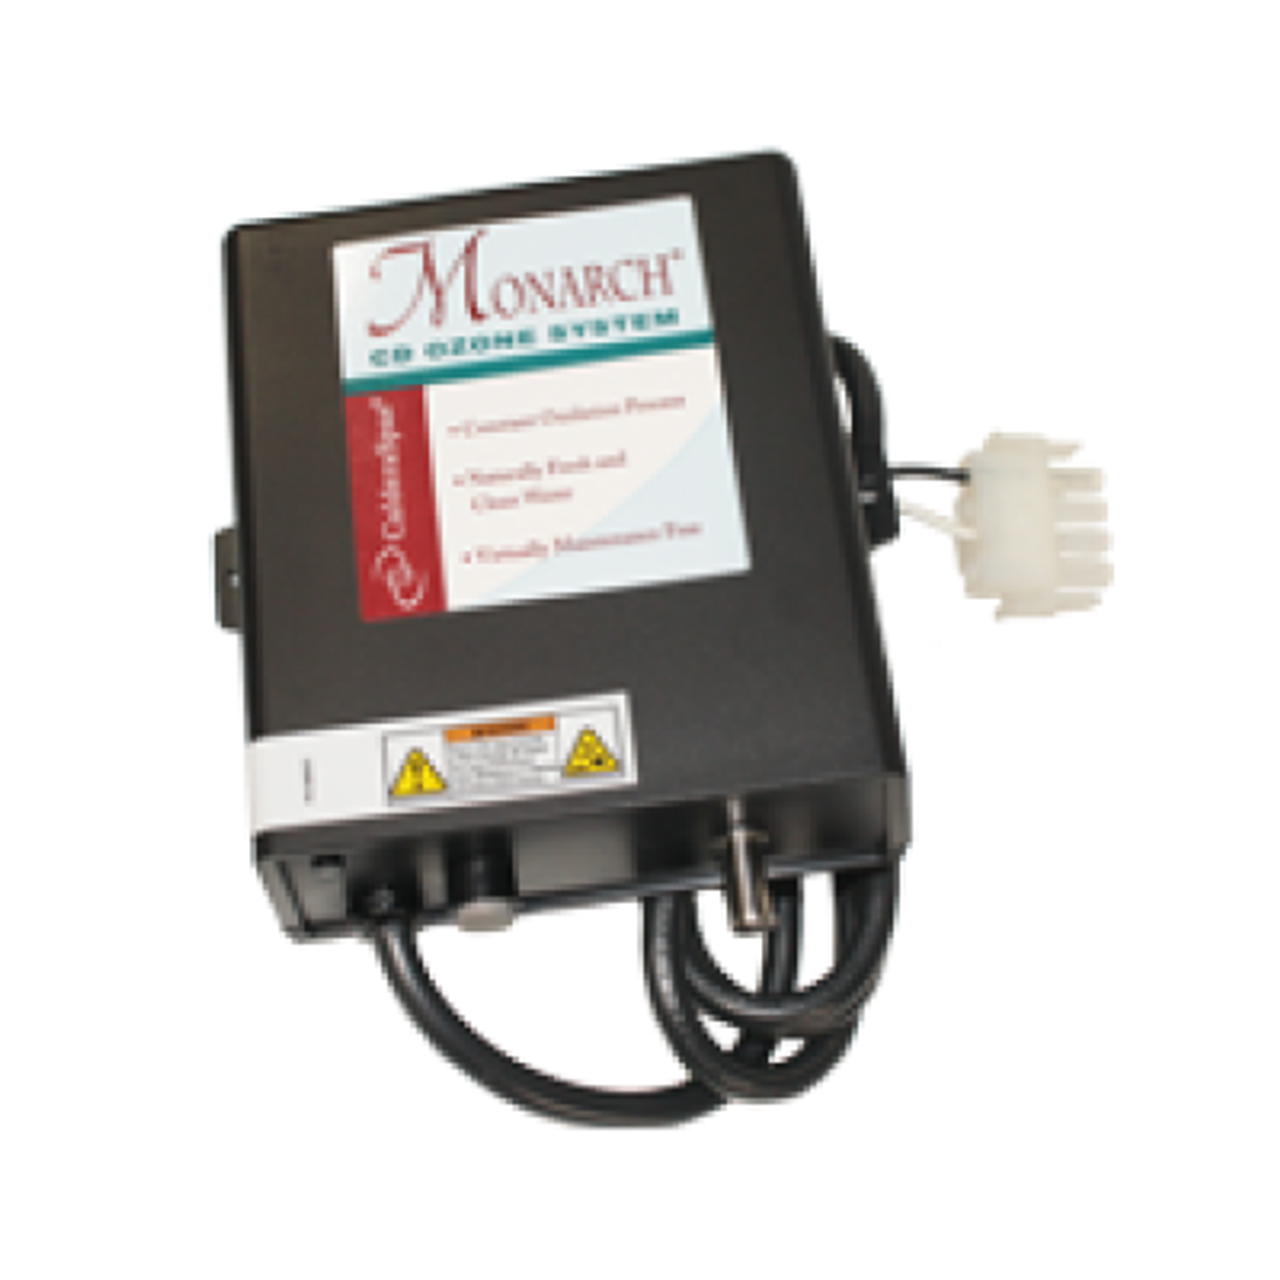 Caldera Spas Monarch Ozone Generator Part # 74084 on